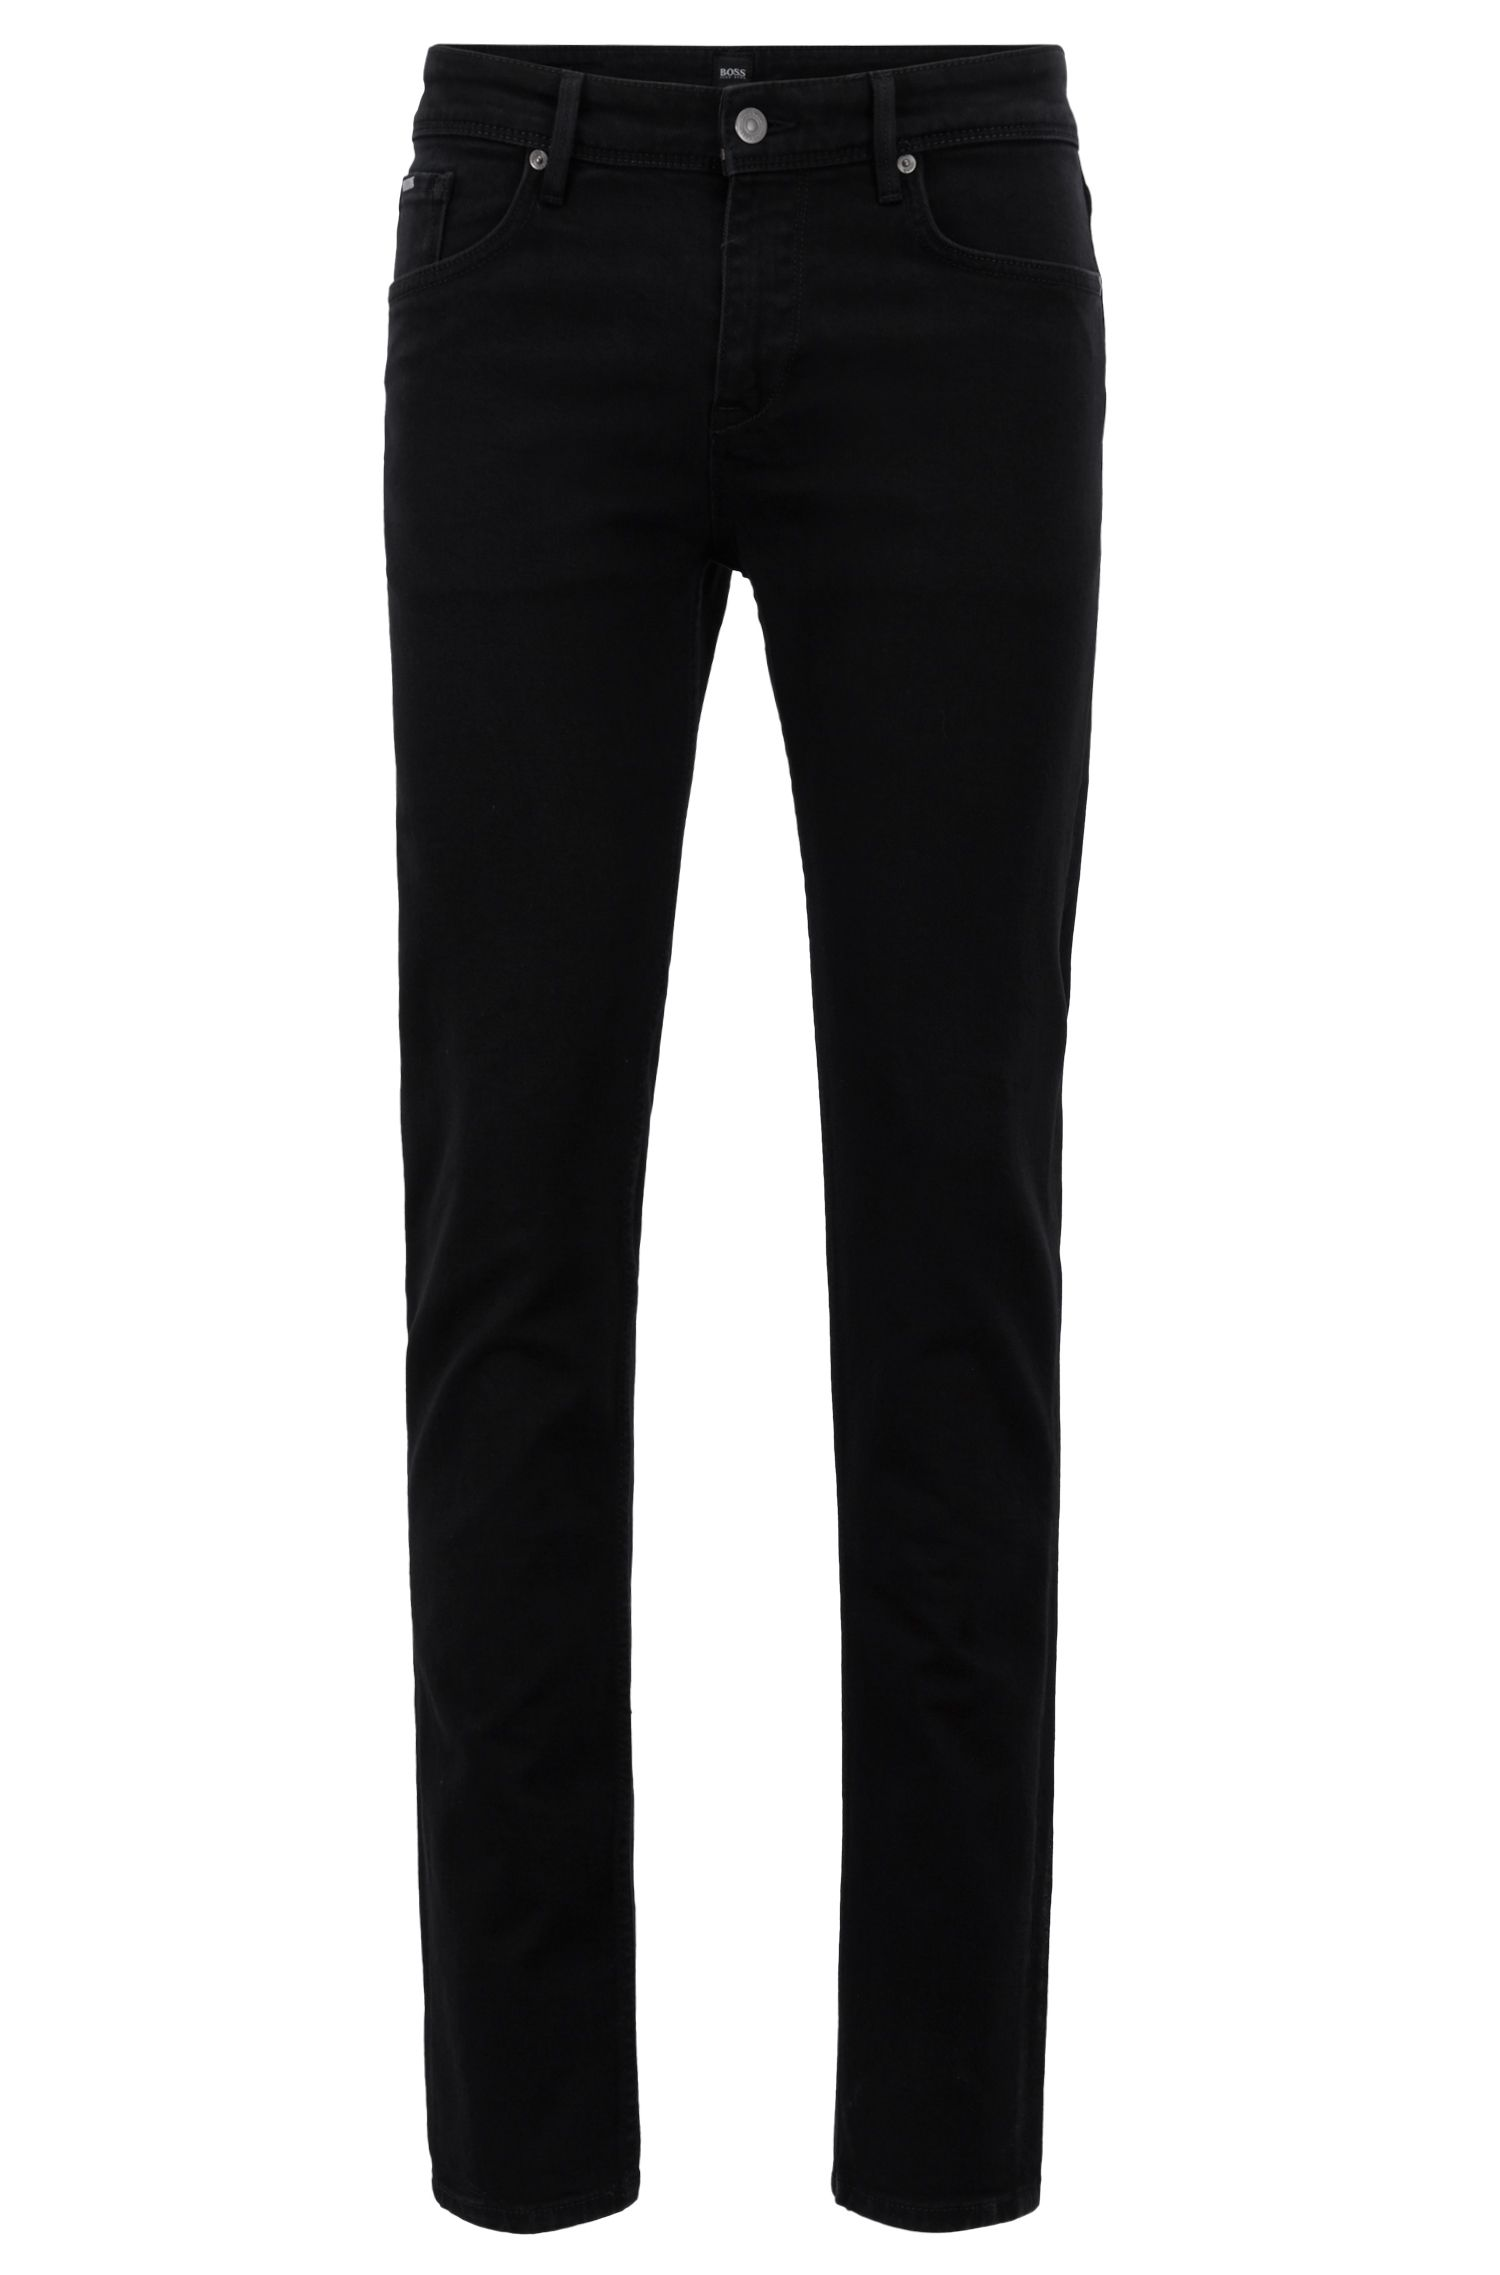 Extra-slim-fit black jeans in Italian stretch denim, Black